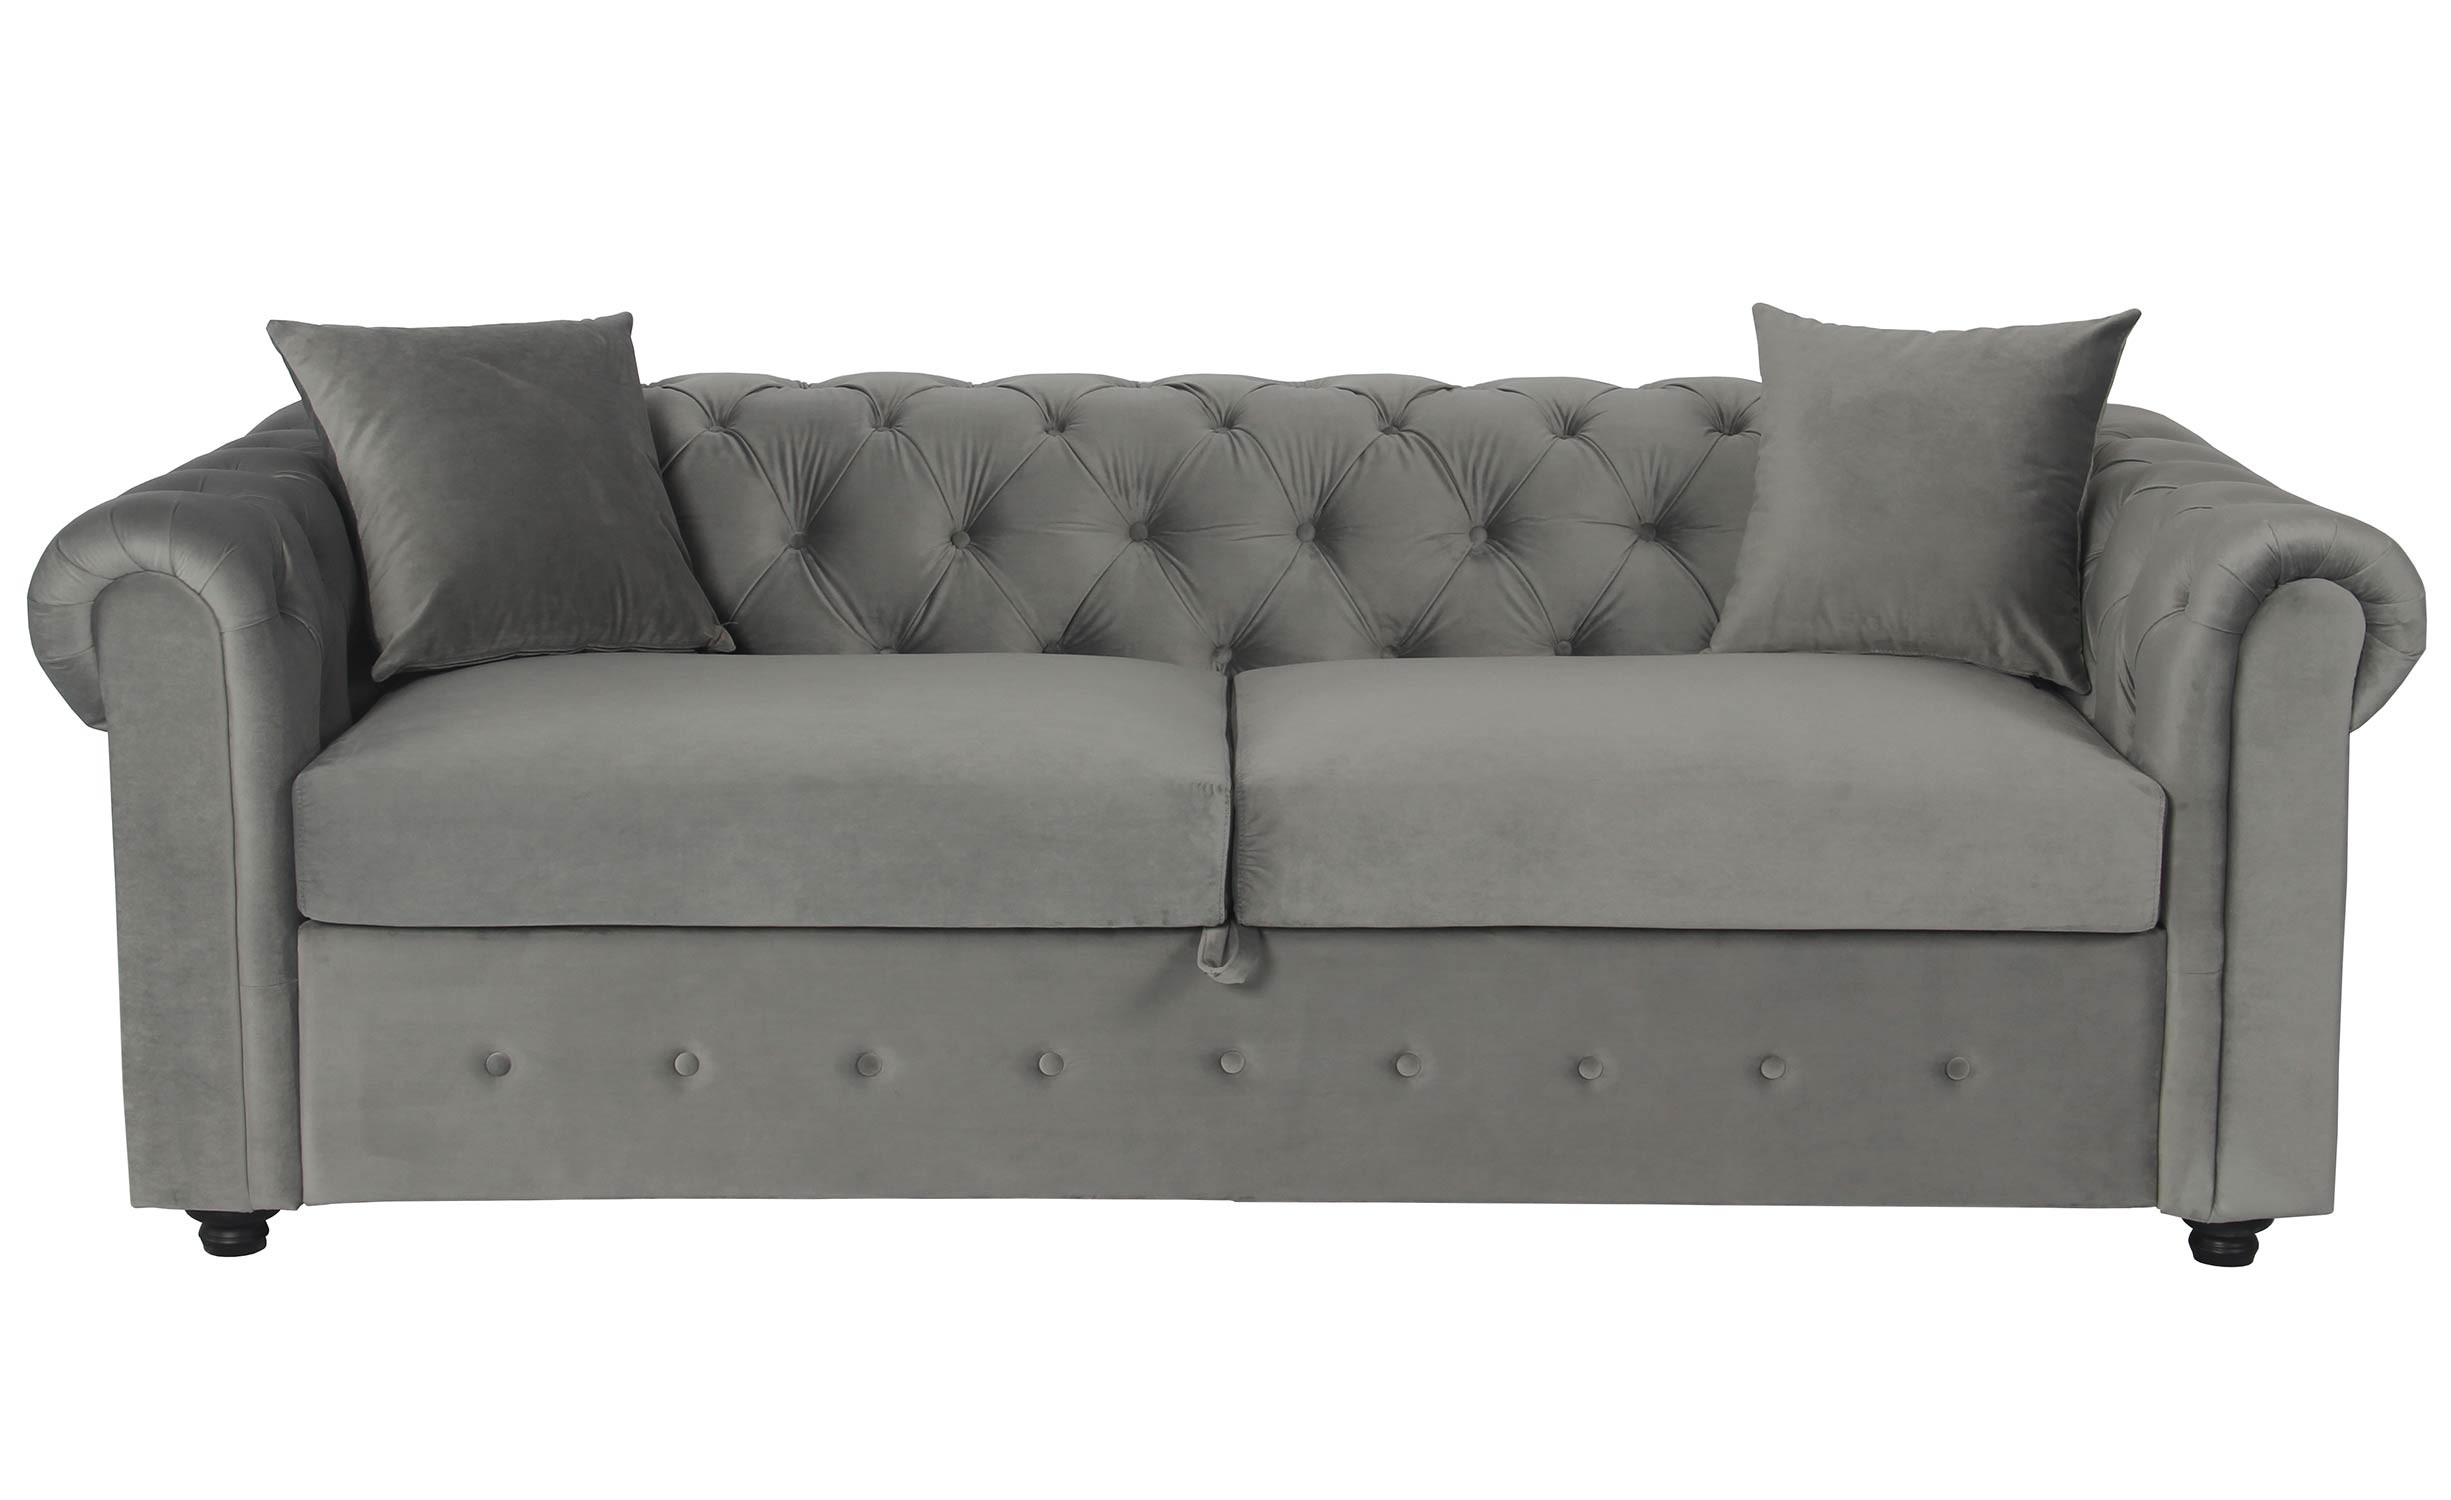 Canapé Chesterfield Convertible Express Avec Matelas Domingo Velours Argent serapportantà Canape Chesterfield Convertible